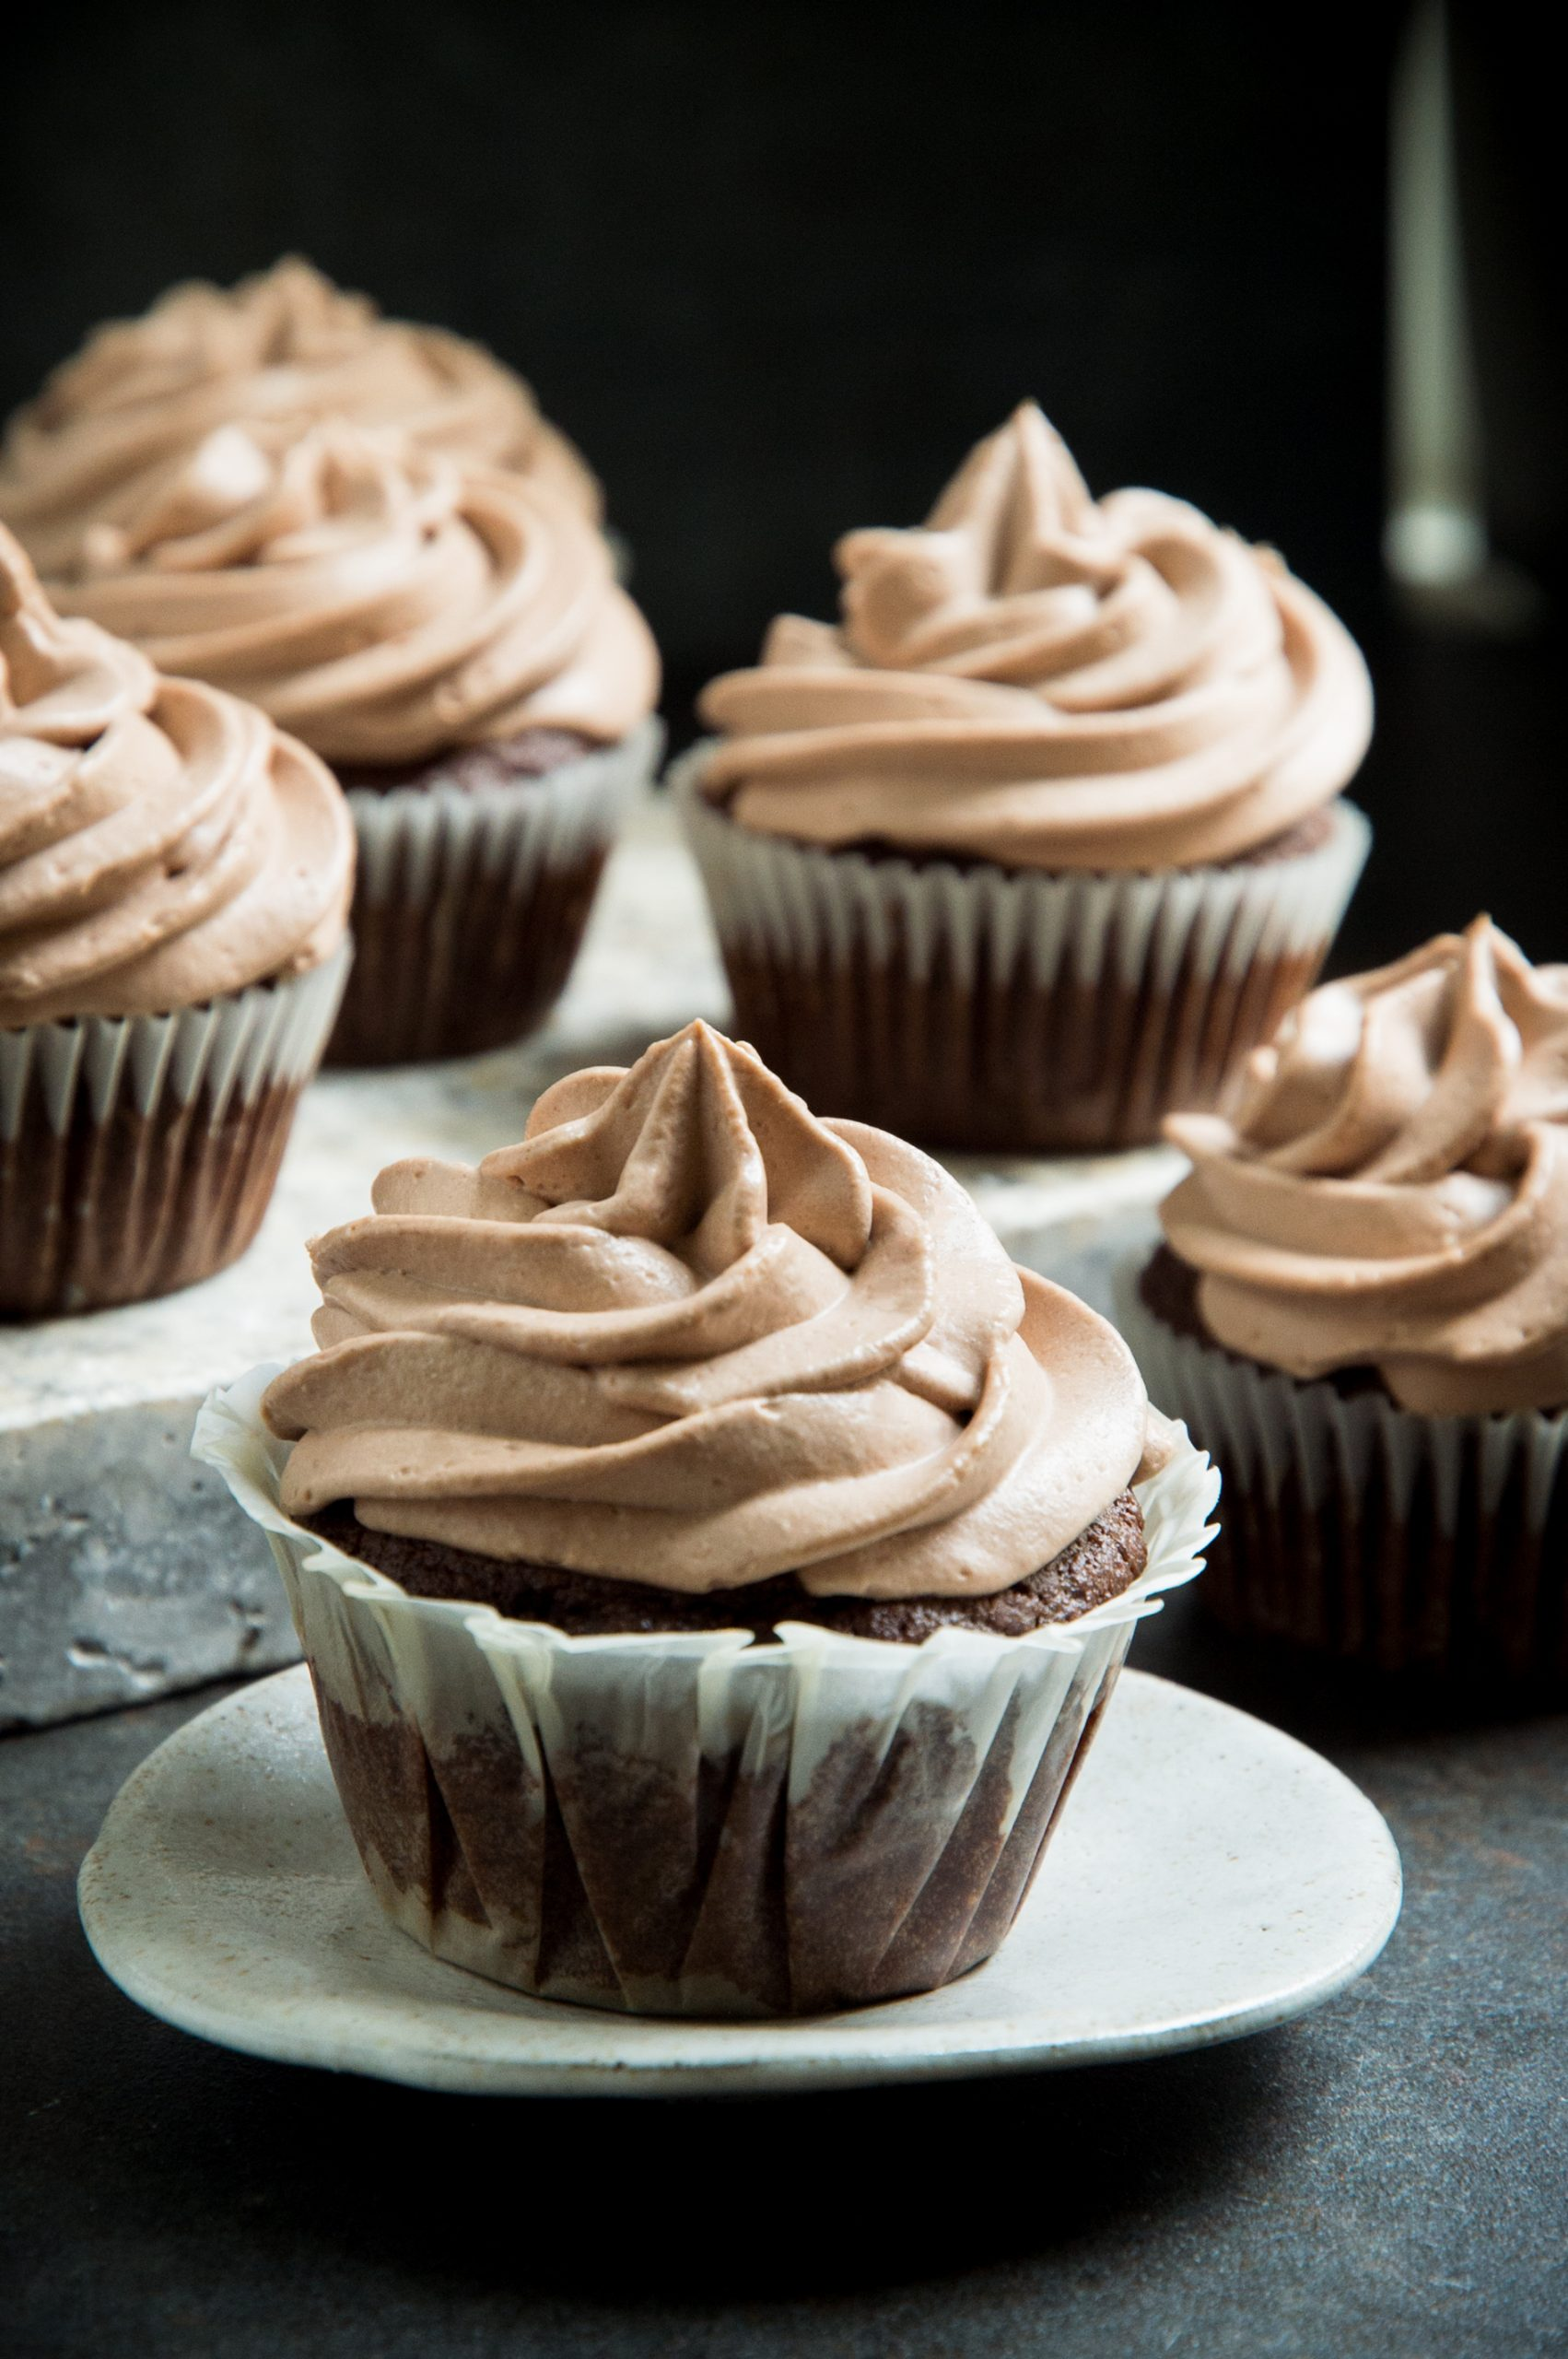 Photo of frosted cupcake on a small plate